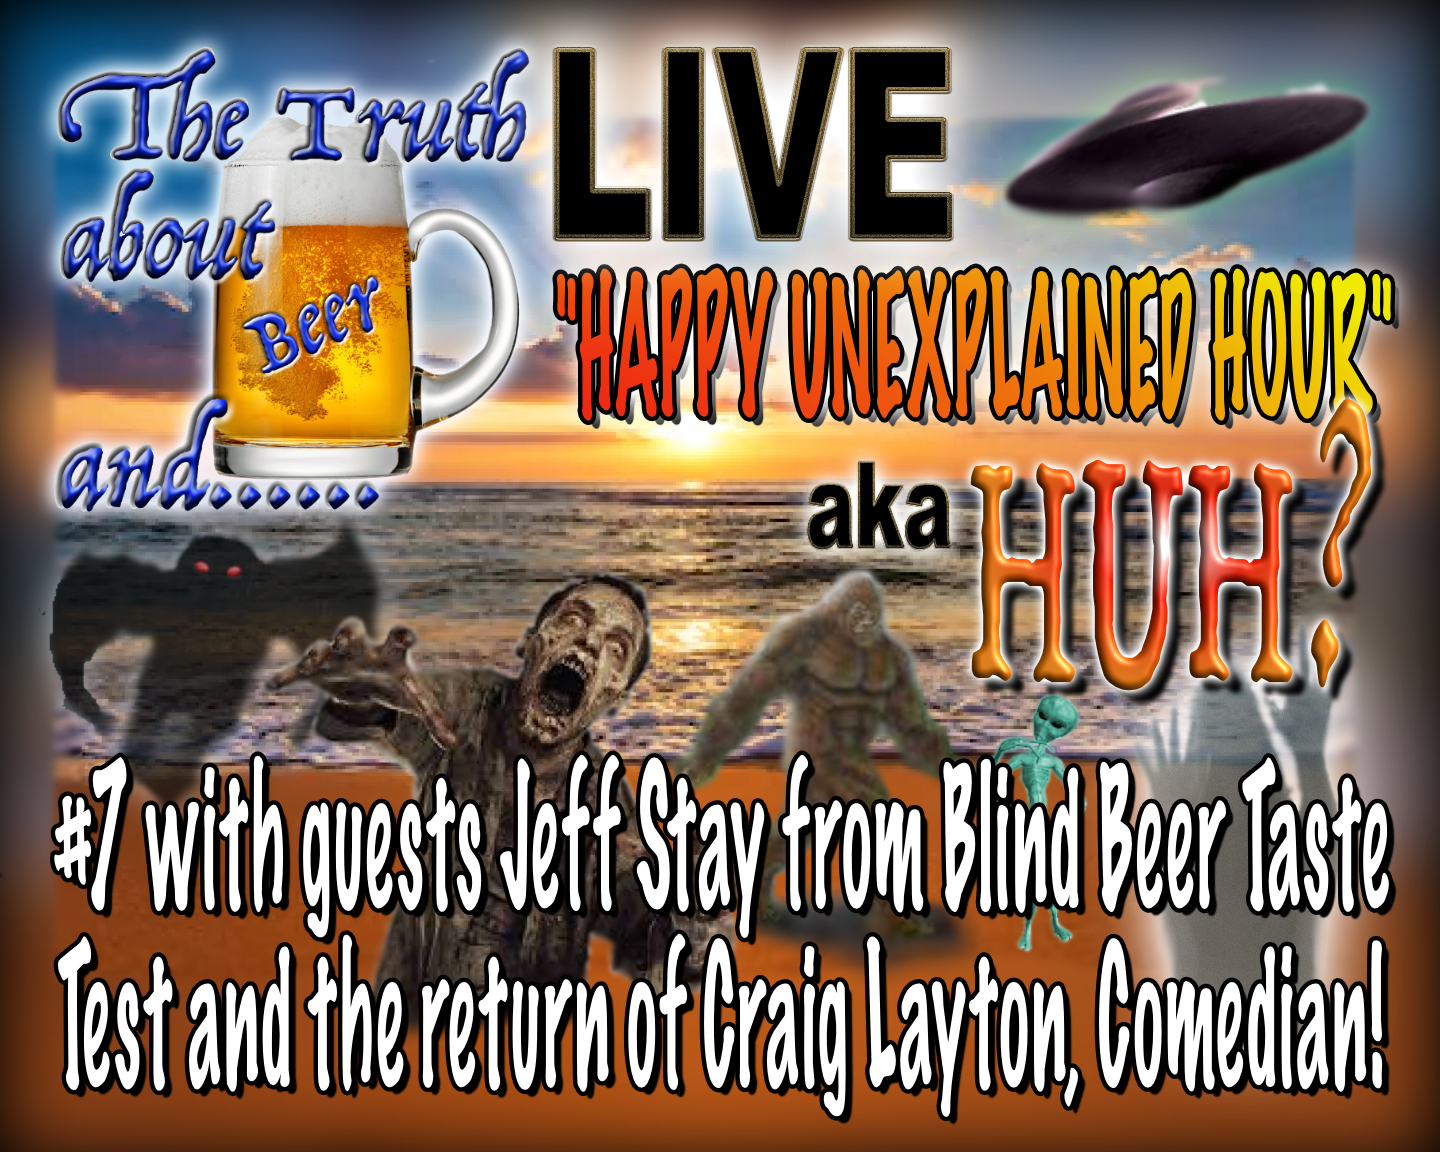 HUH? LIVE #7 with special guest Jeff Stay and Craig Layton himself